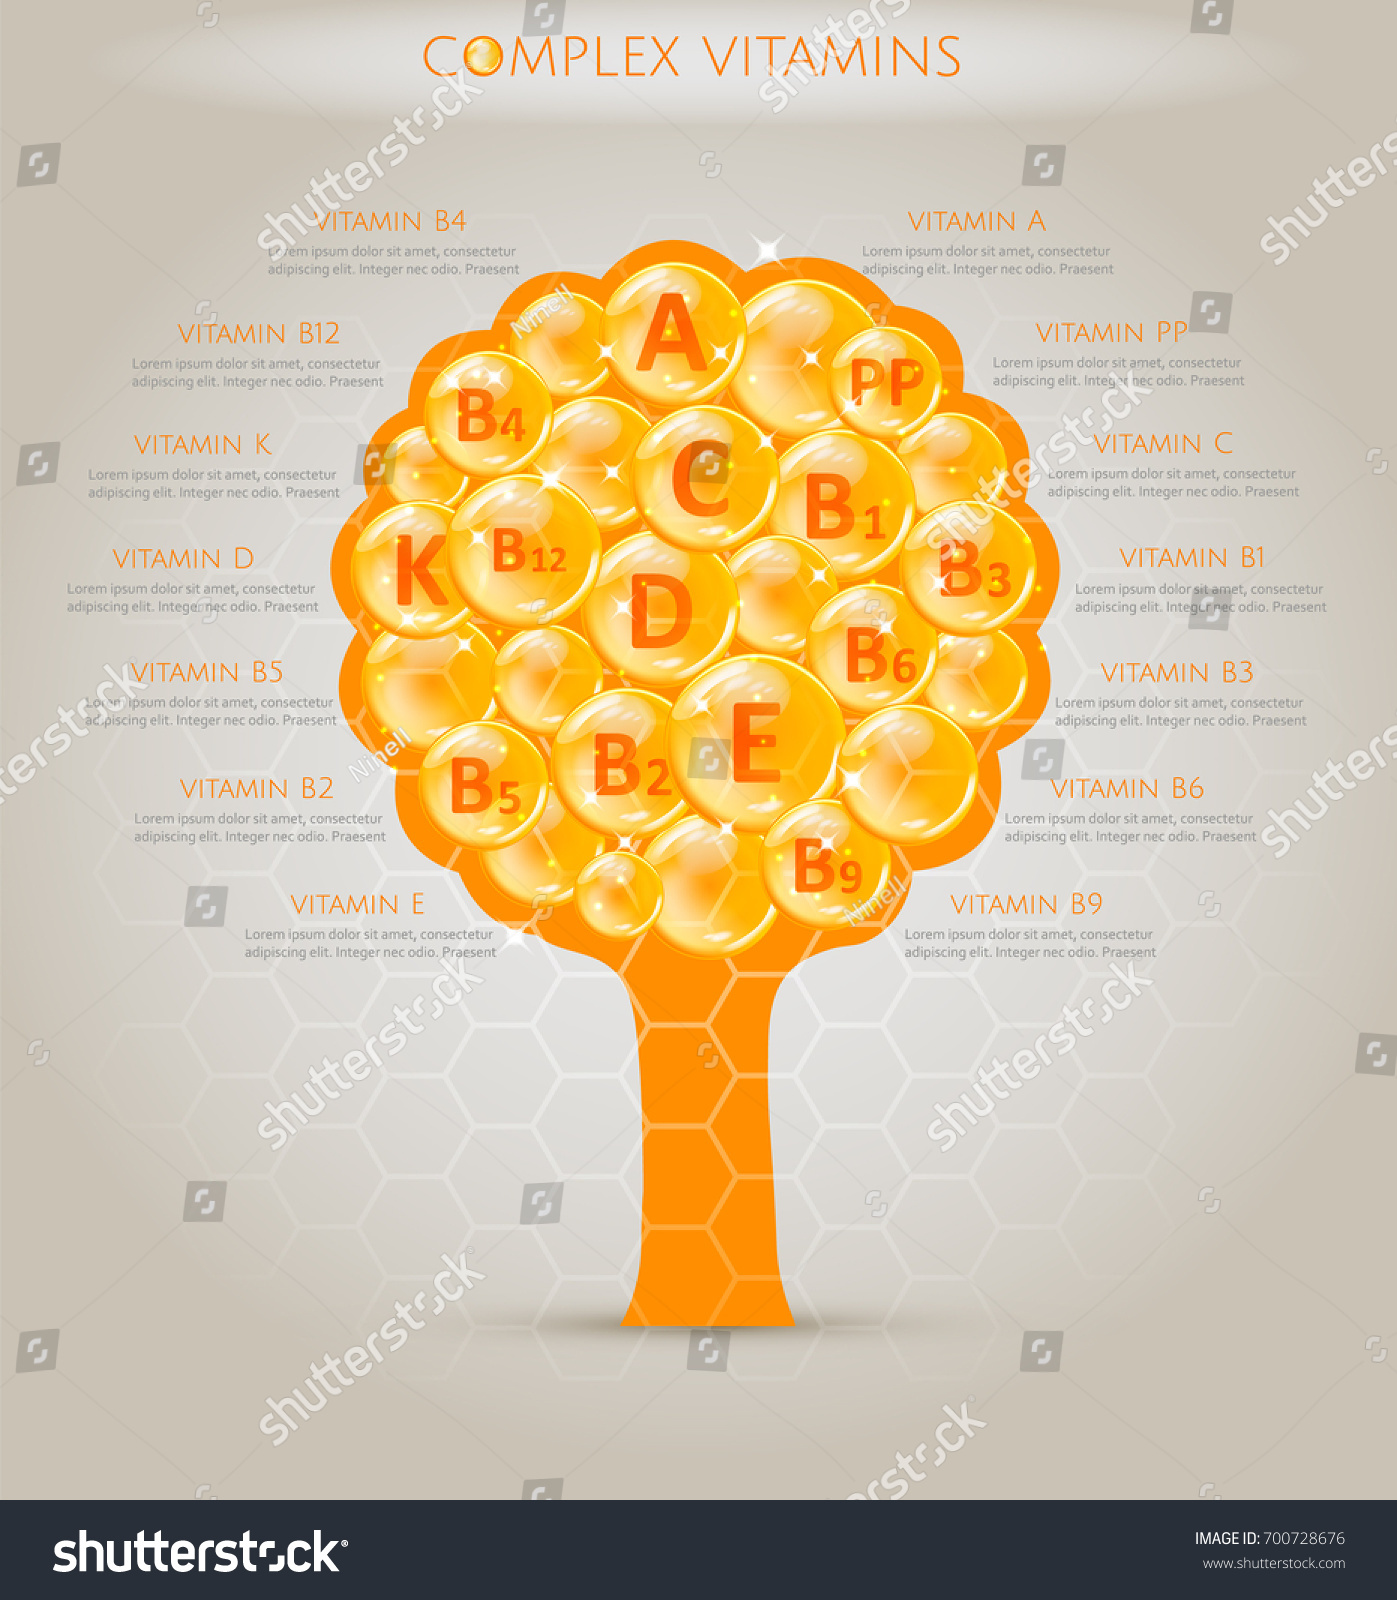 Complex vitamins all necessary vitamins set stock vector 700728676 a complex of vitamins all the necessary vitamins in set tree form with vitamins ccuart Image collections